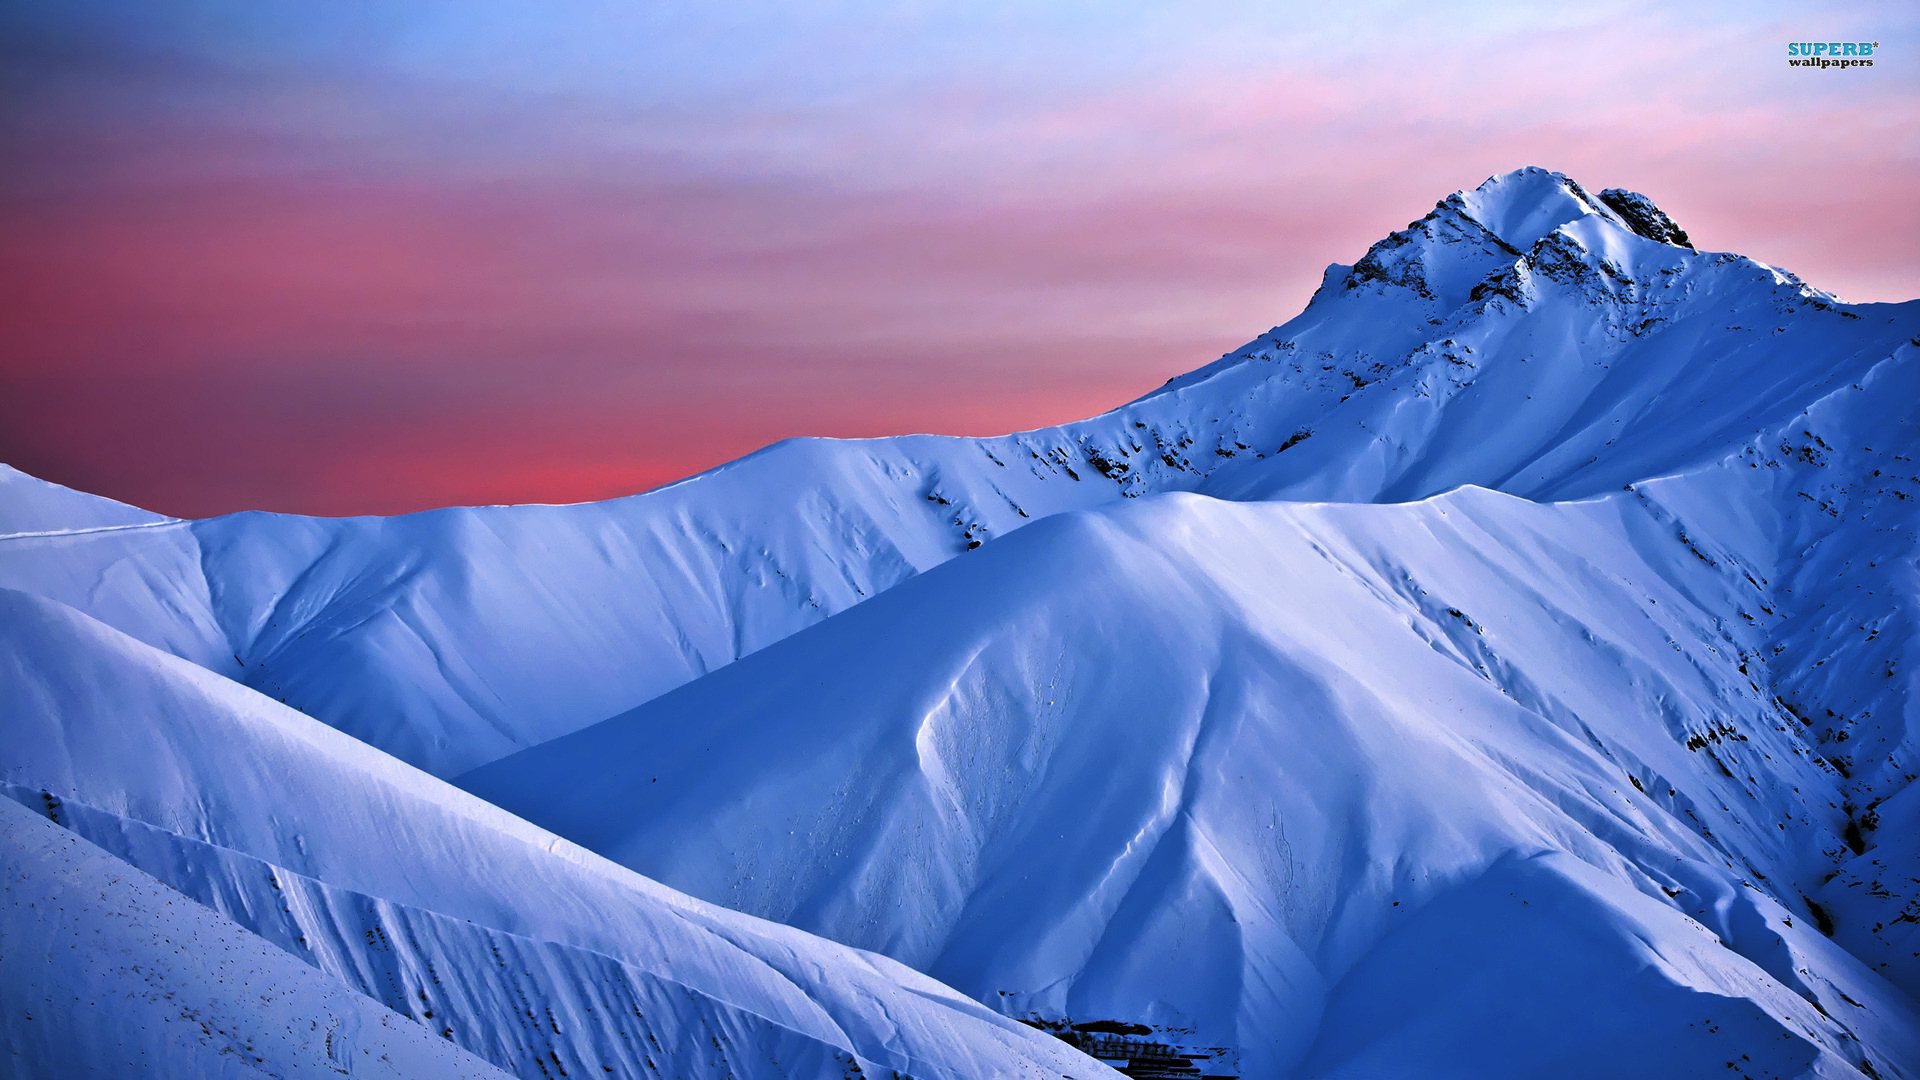 Snow Mountain Wallpapers Full Hd